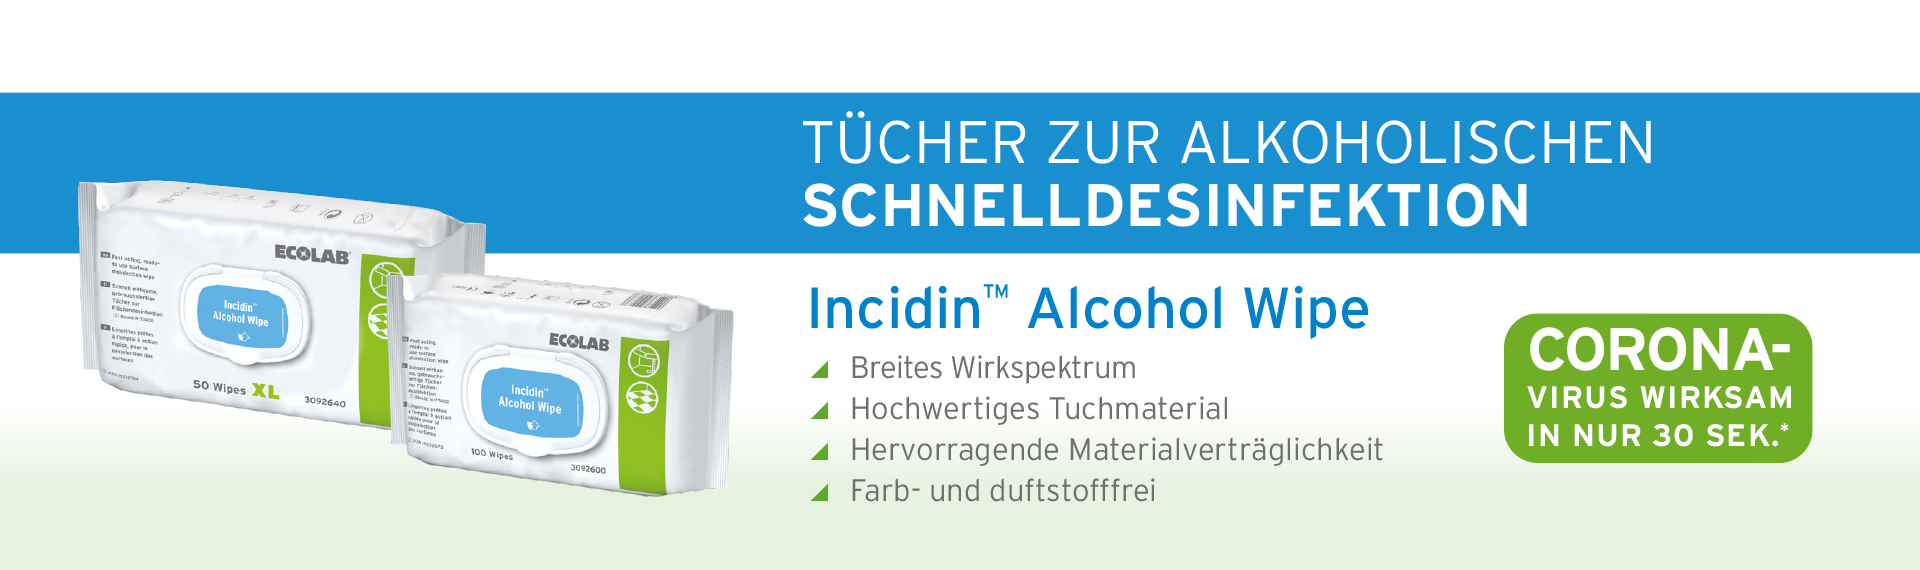 Incidin Alcohol Wipe